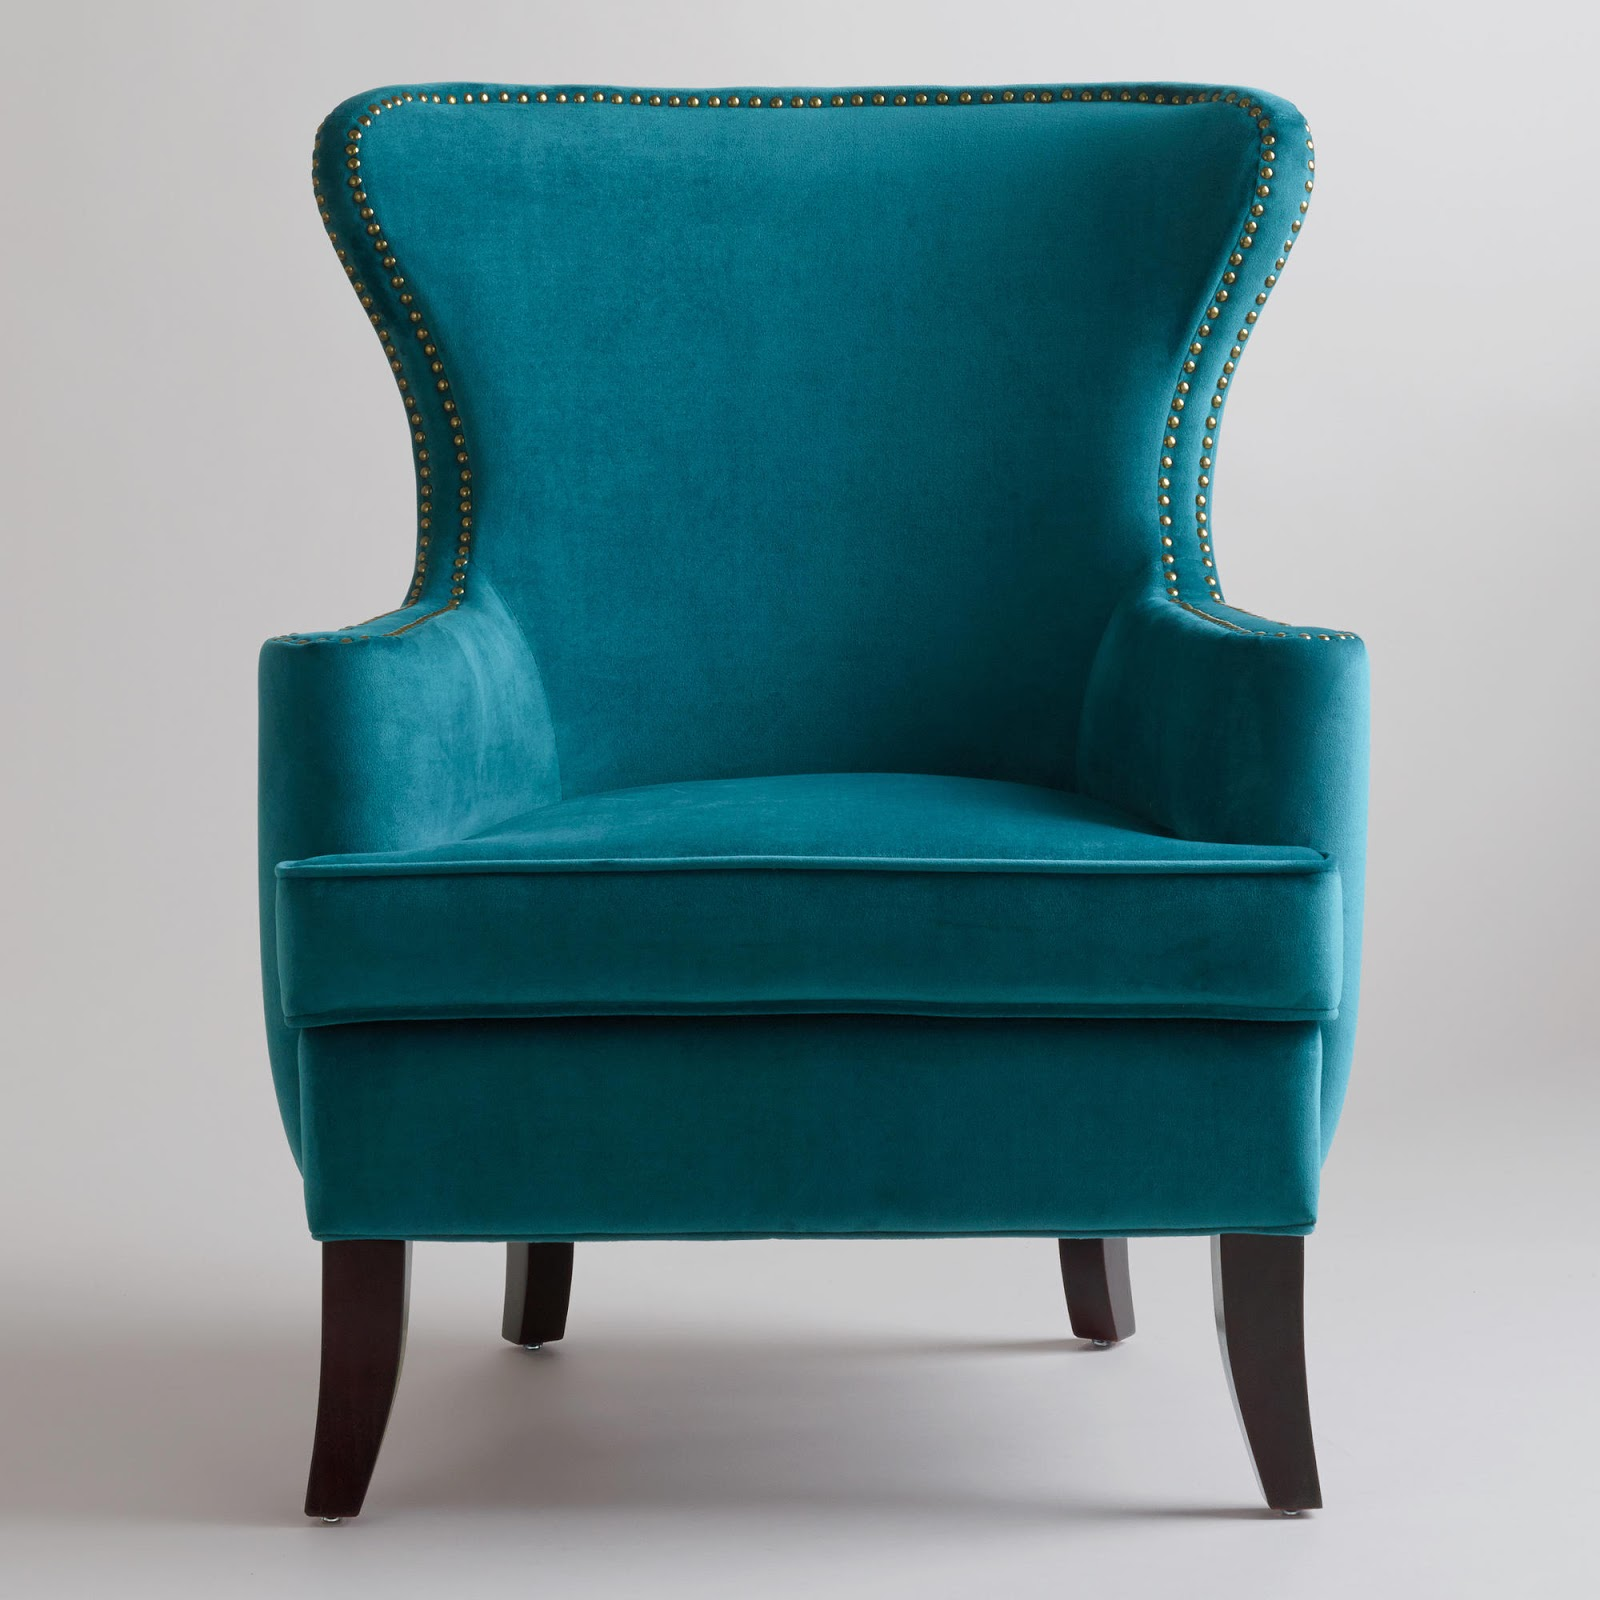 Teal Wingback Chair Leather Pub Retro Ranch Reno Things I Need